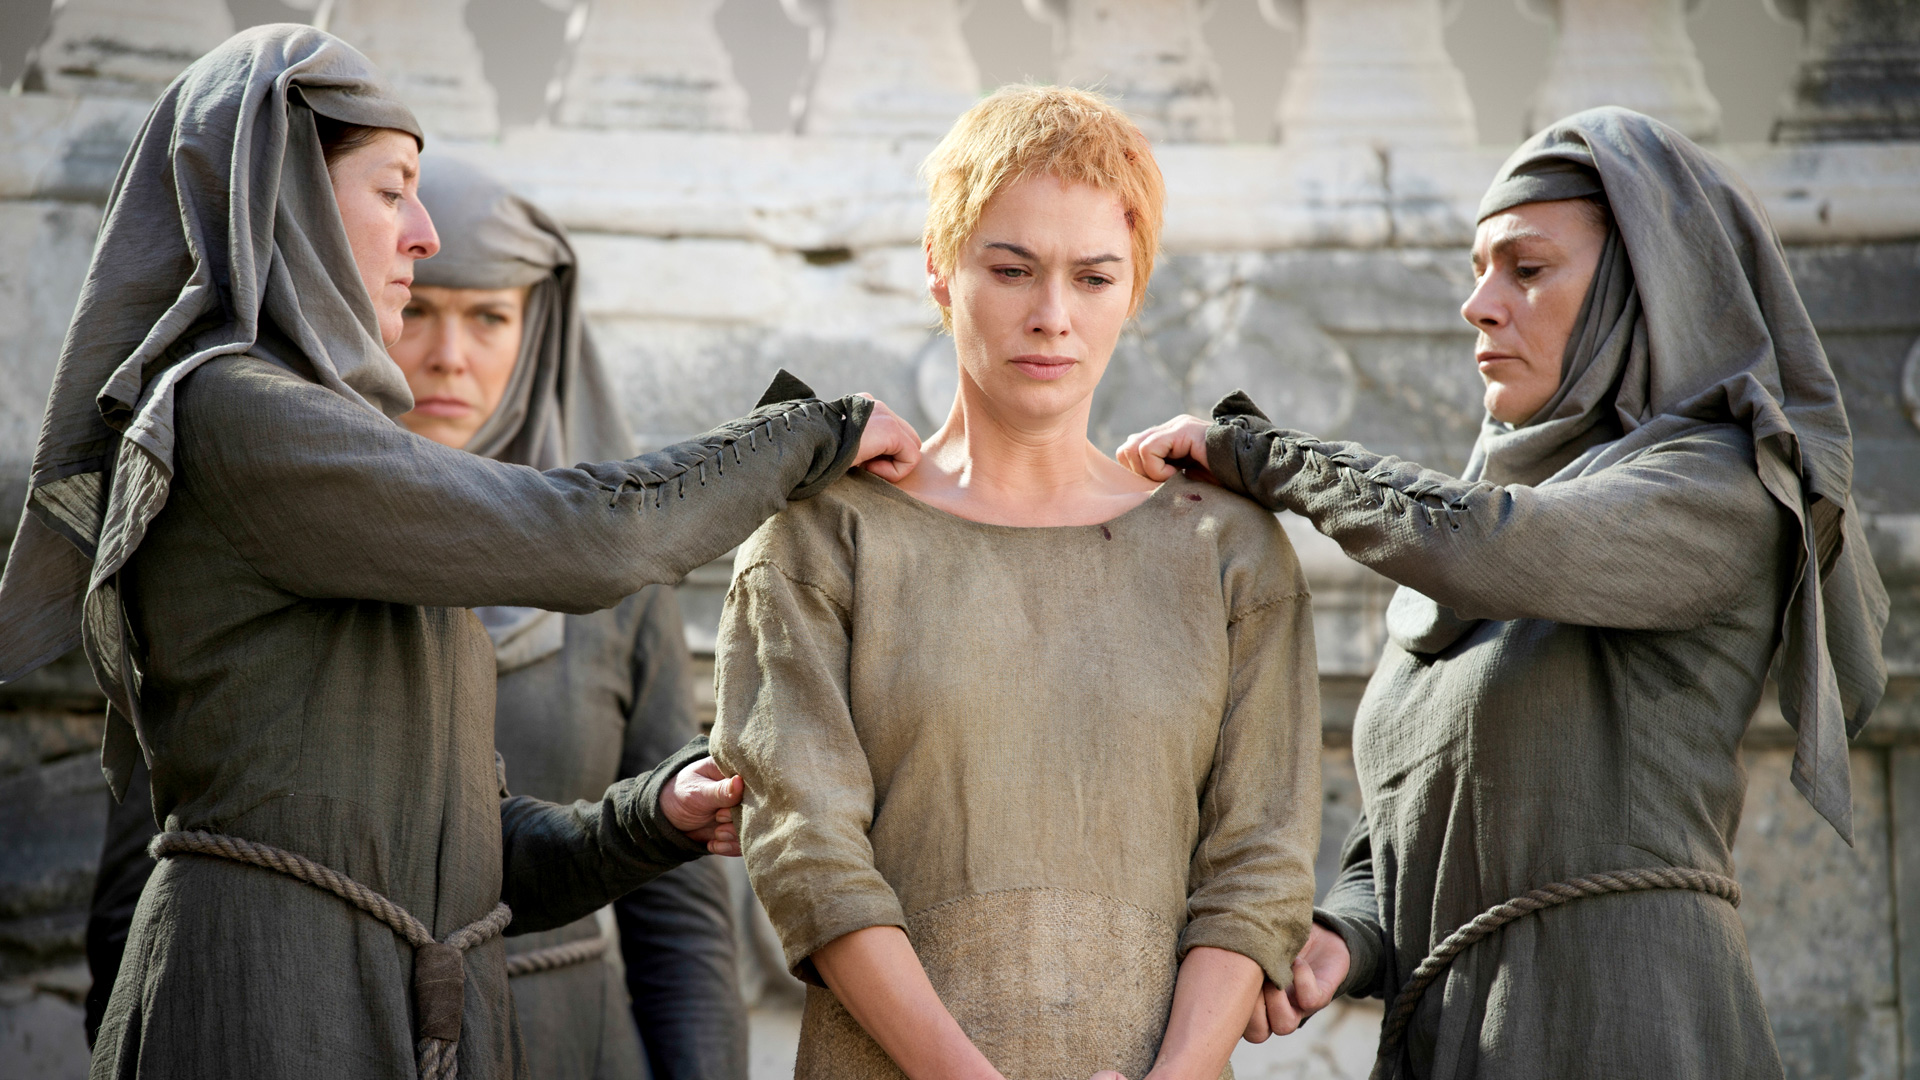 NEGATIV_GAME OF THRONES_MOTHER'S MERCY_Cersei Lannister